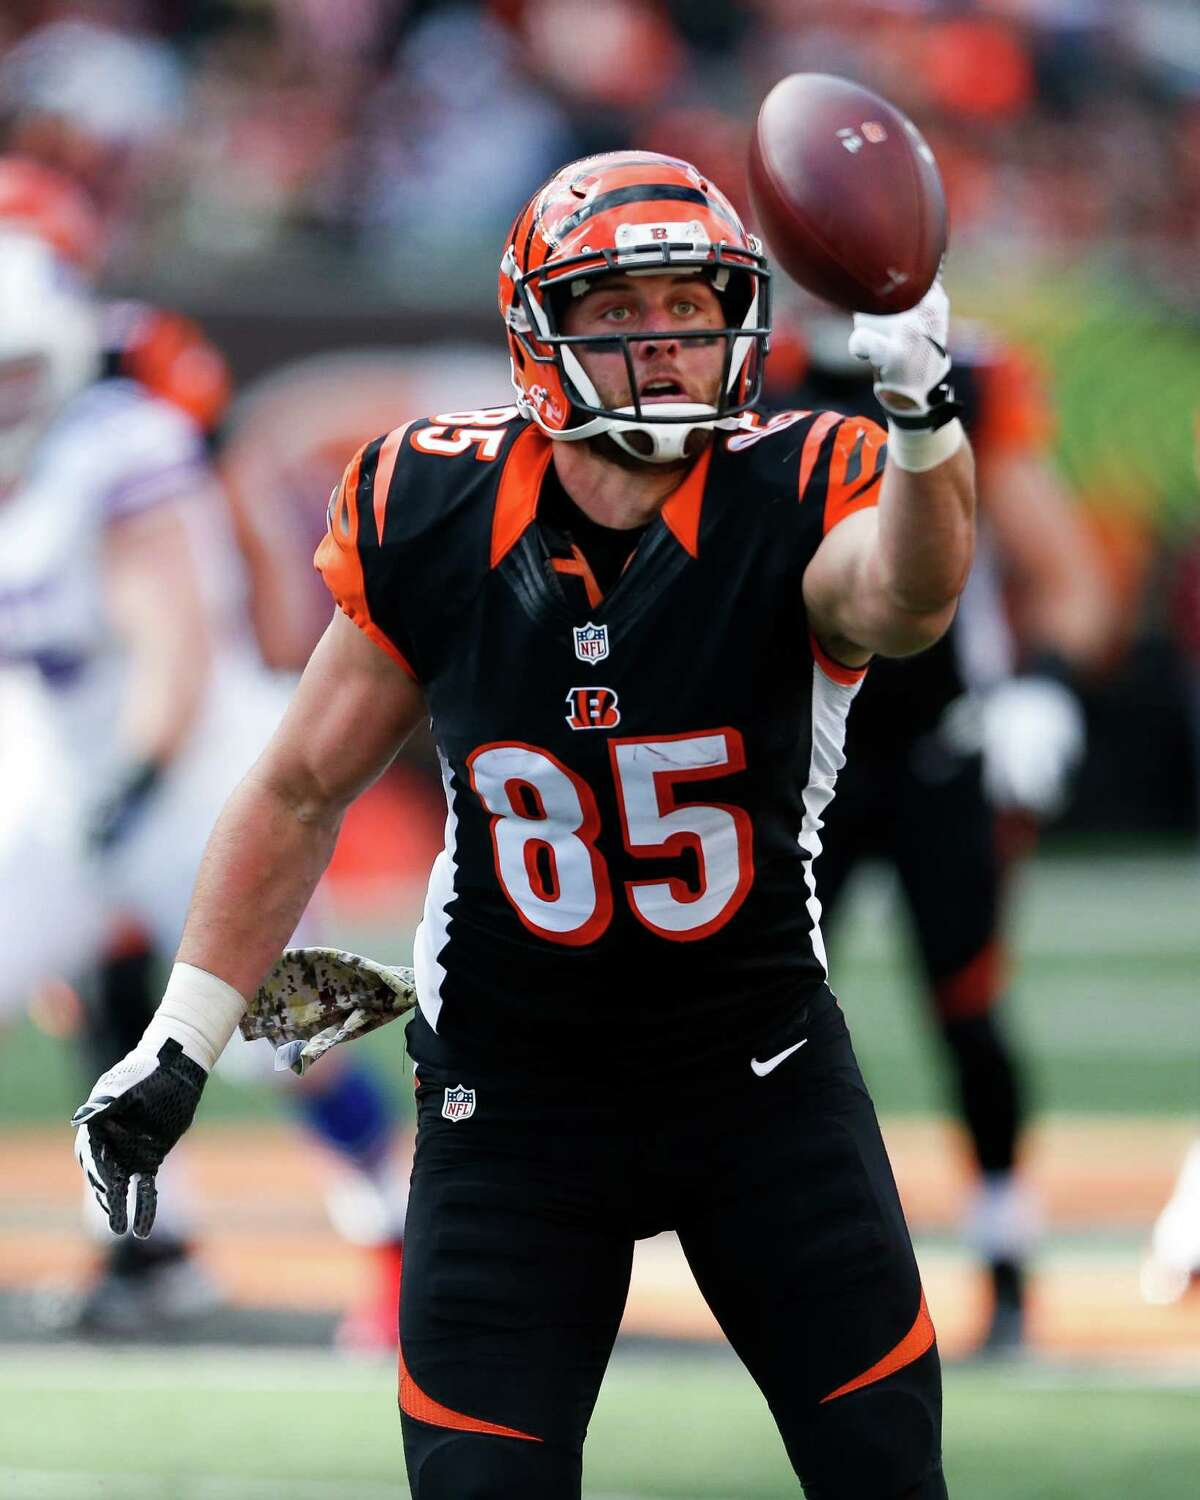 TYLER EIFERT Age: 27   Former team: CIN   2017 stats: 4 recs, 46 yards (2 games) Well one way to find an inexpensive player is to sign one who other teams may view as damaged goods. After a Pro Bowl season in 2015, Eifert suffered an ACL in that very all-star game and played only eight games in 2016. Last season a recurring back issuer resulted in a second surgery, causing him to miss all but two games of 2017. When healthy, Eifert has proven to be a capable receiving threat, and if one team is willing to take a chance on him, it could pay off.